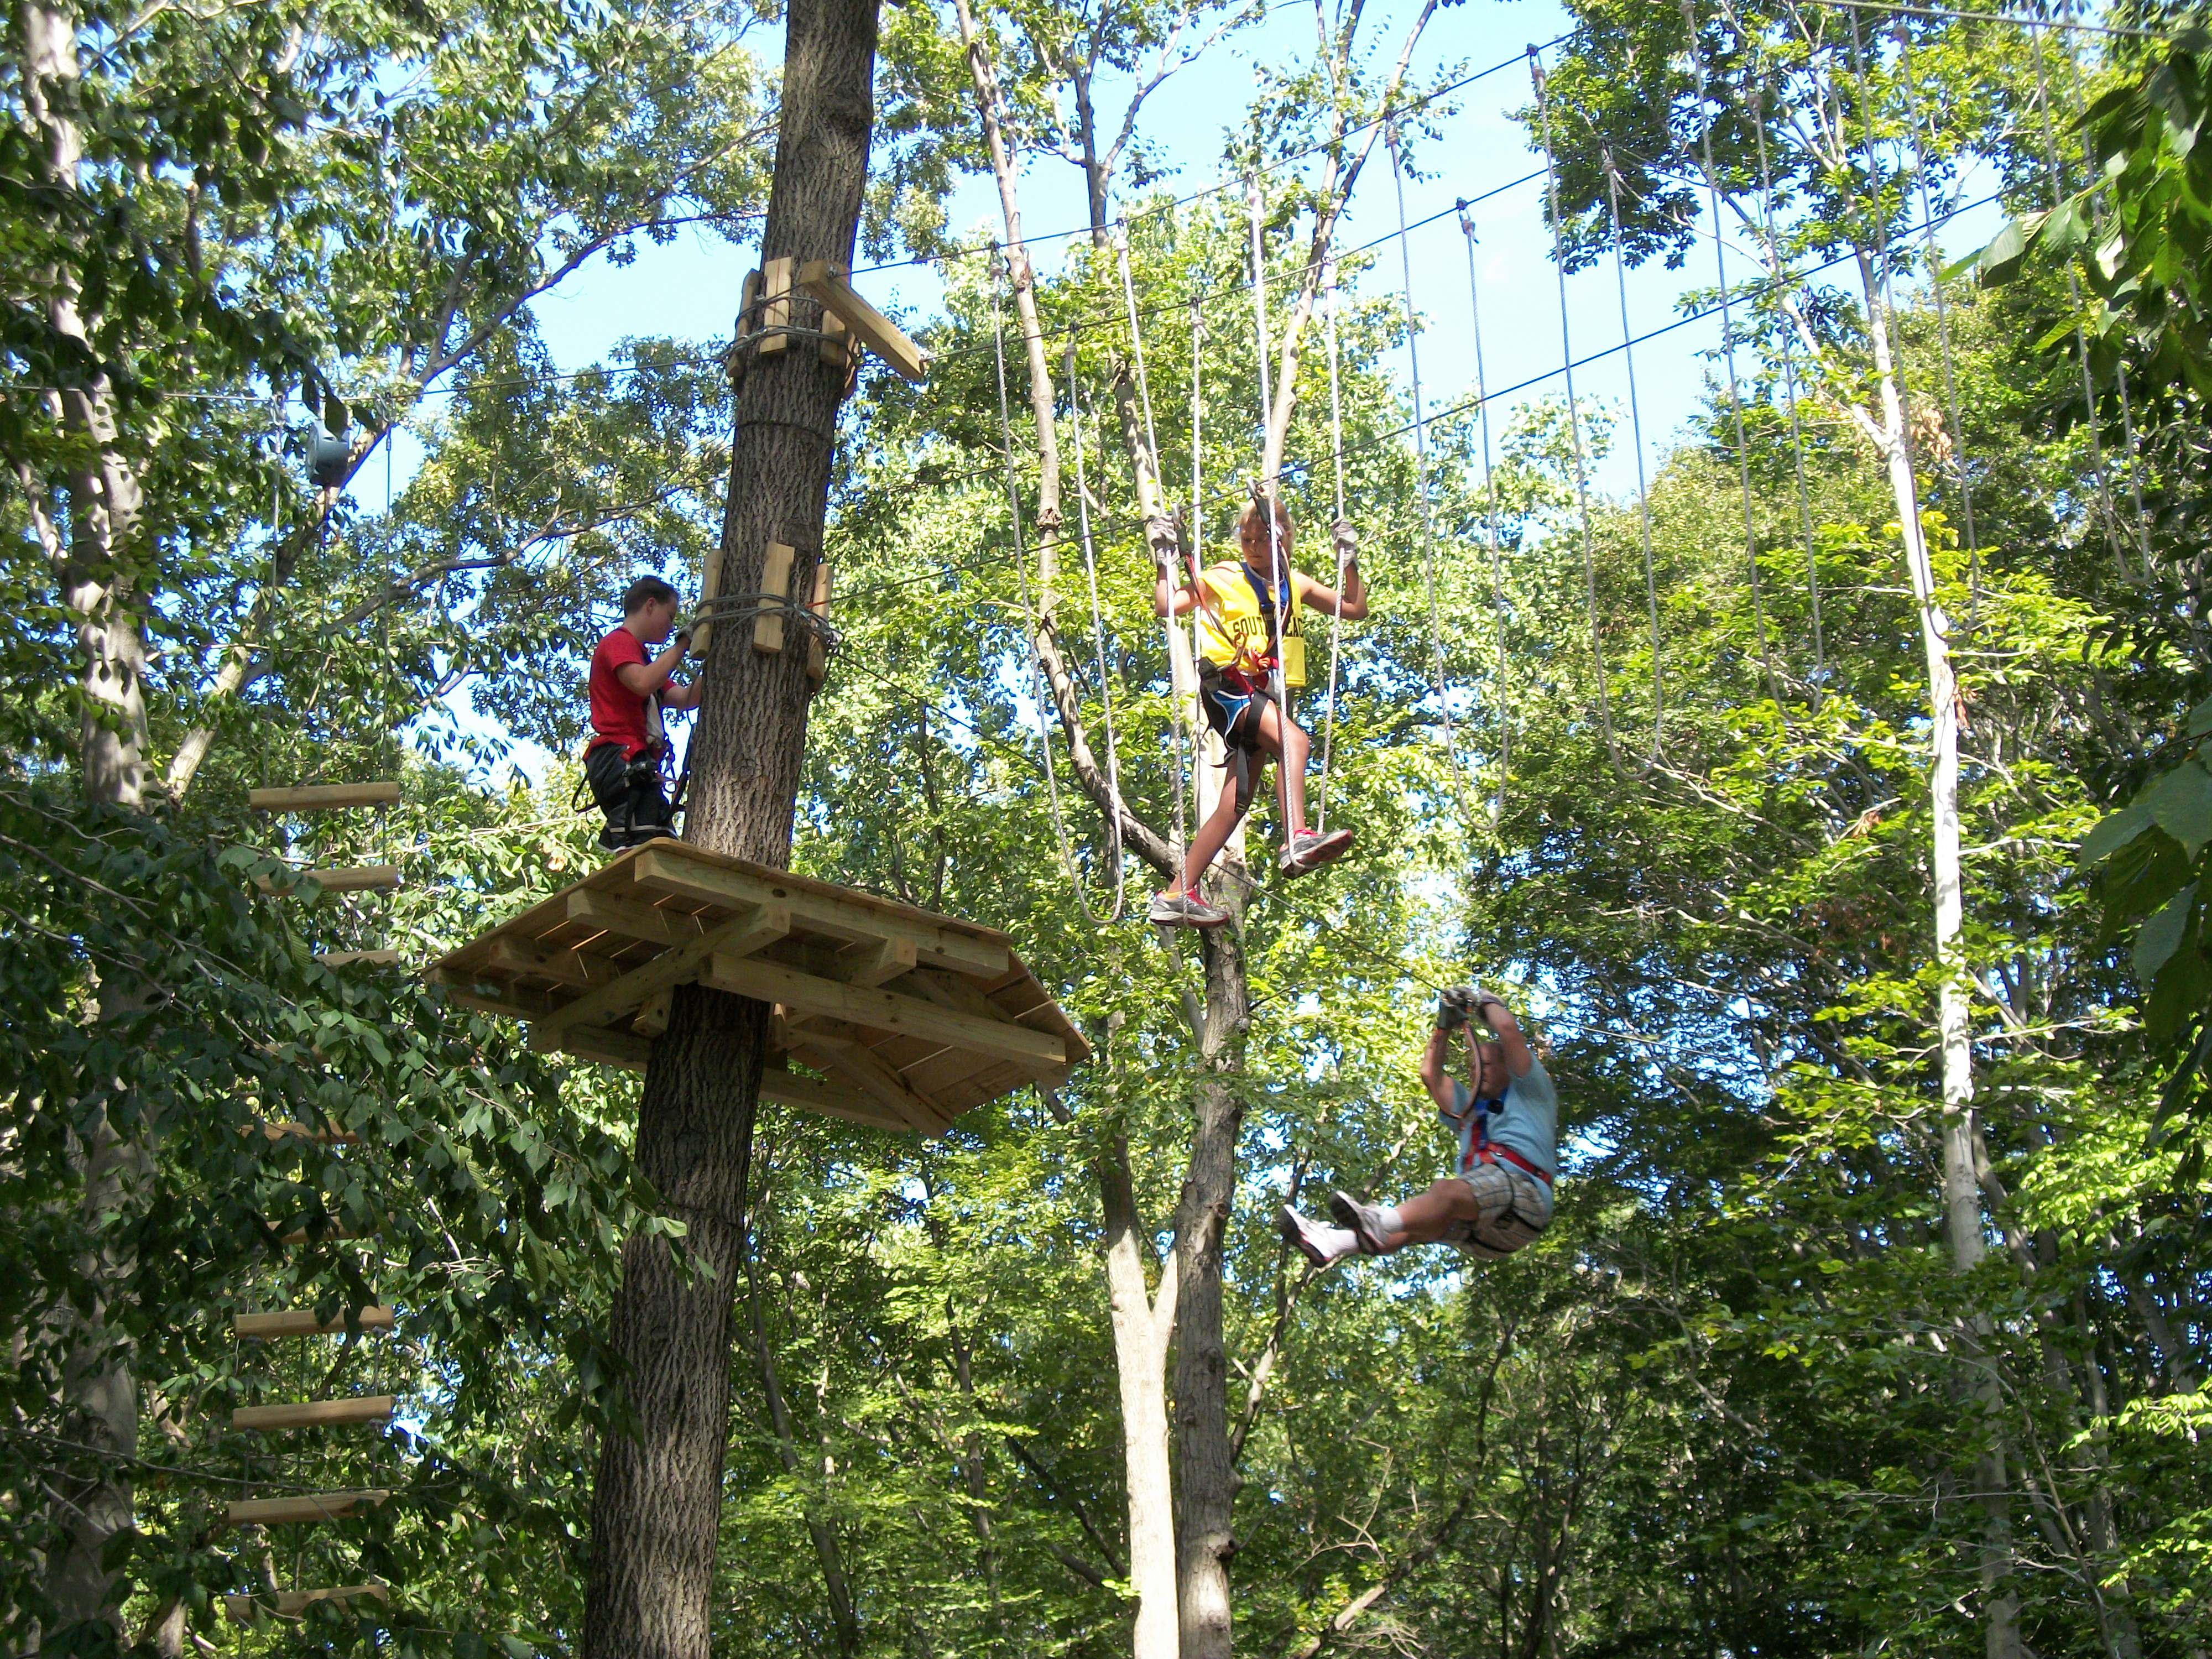 Educators Zip Climb For Free At The Adventure Park At The Discovery Museum August 13 14 For Educator Days 2019